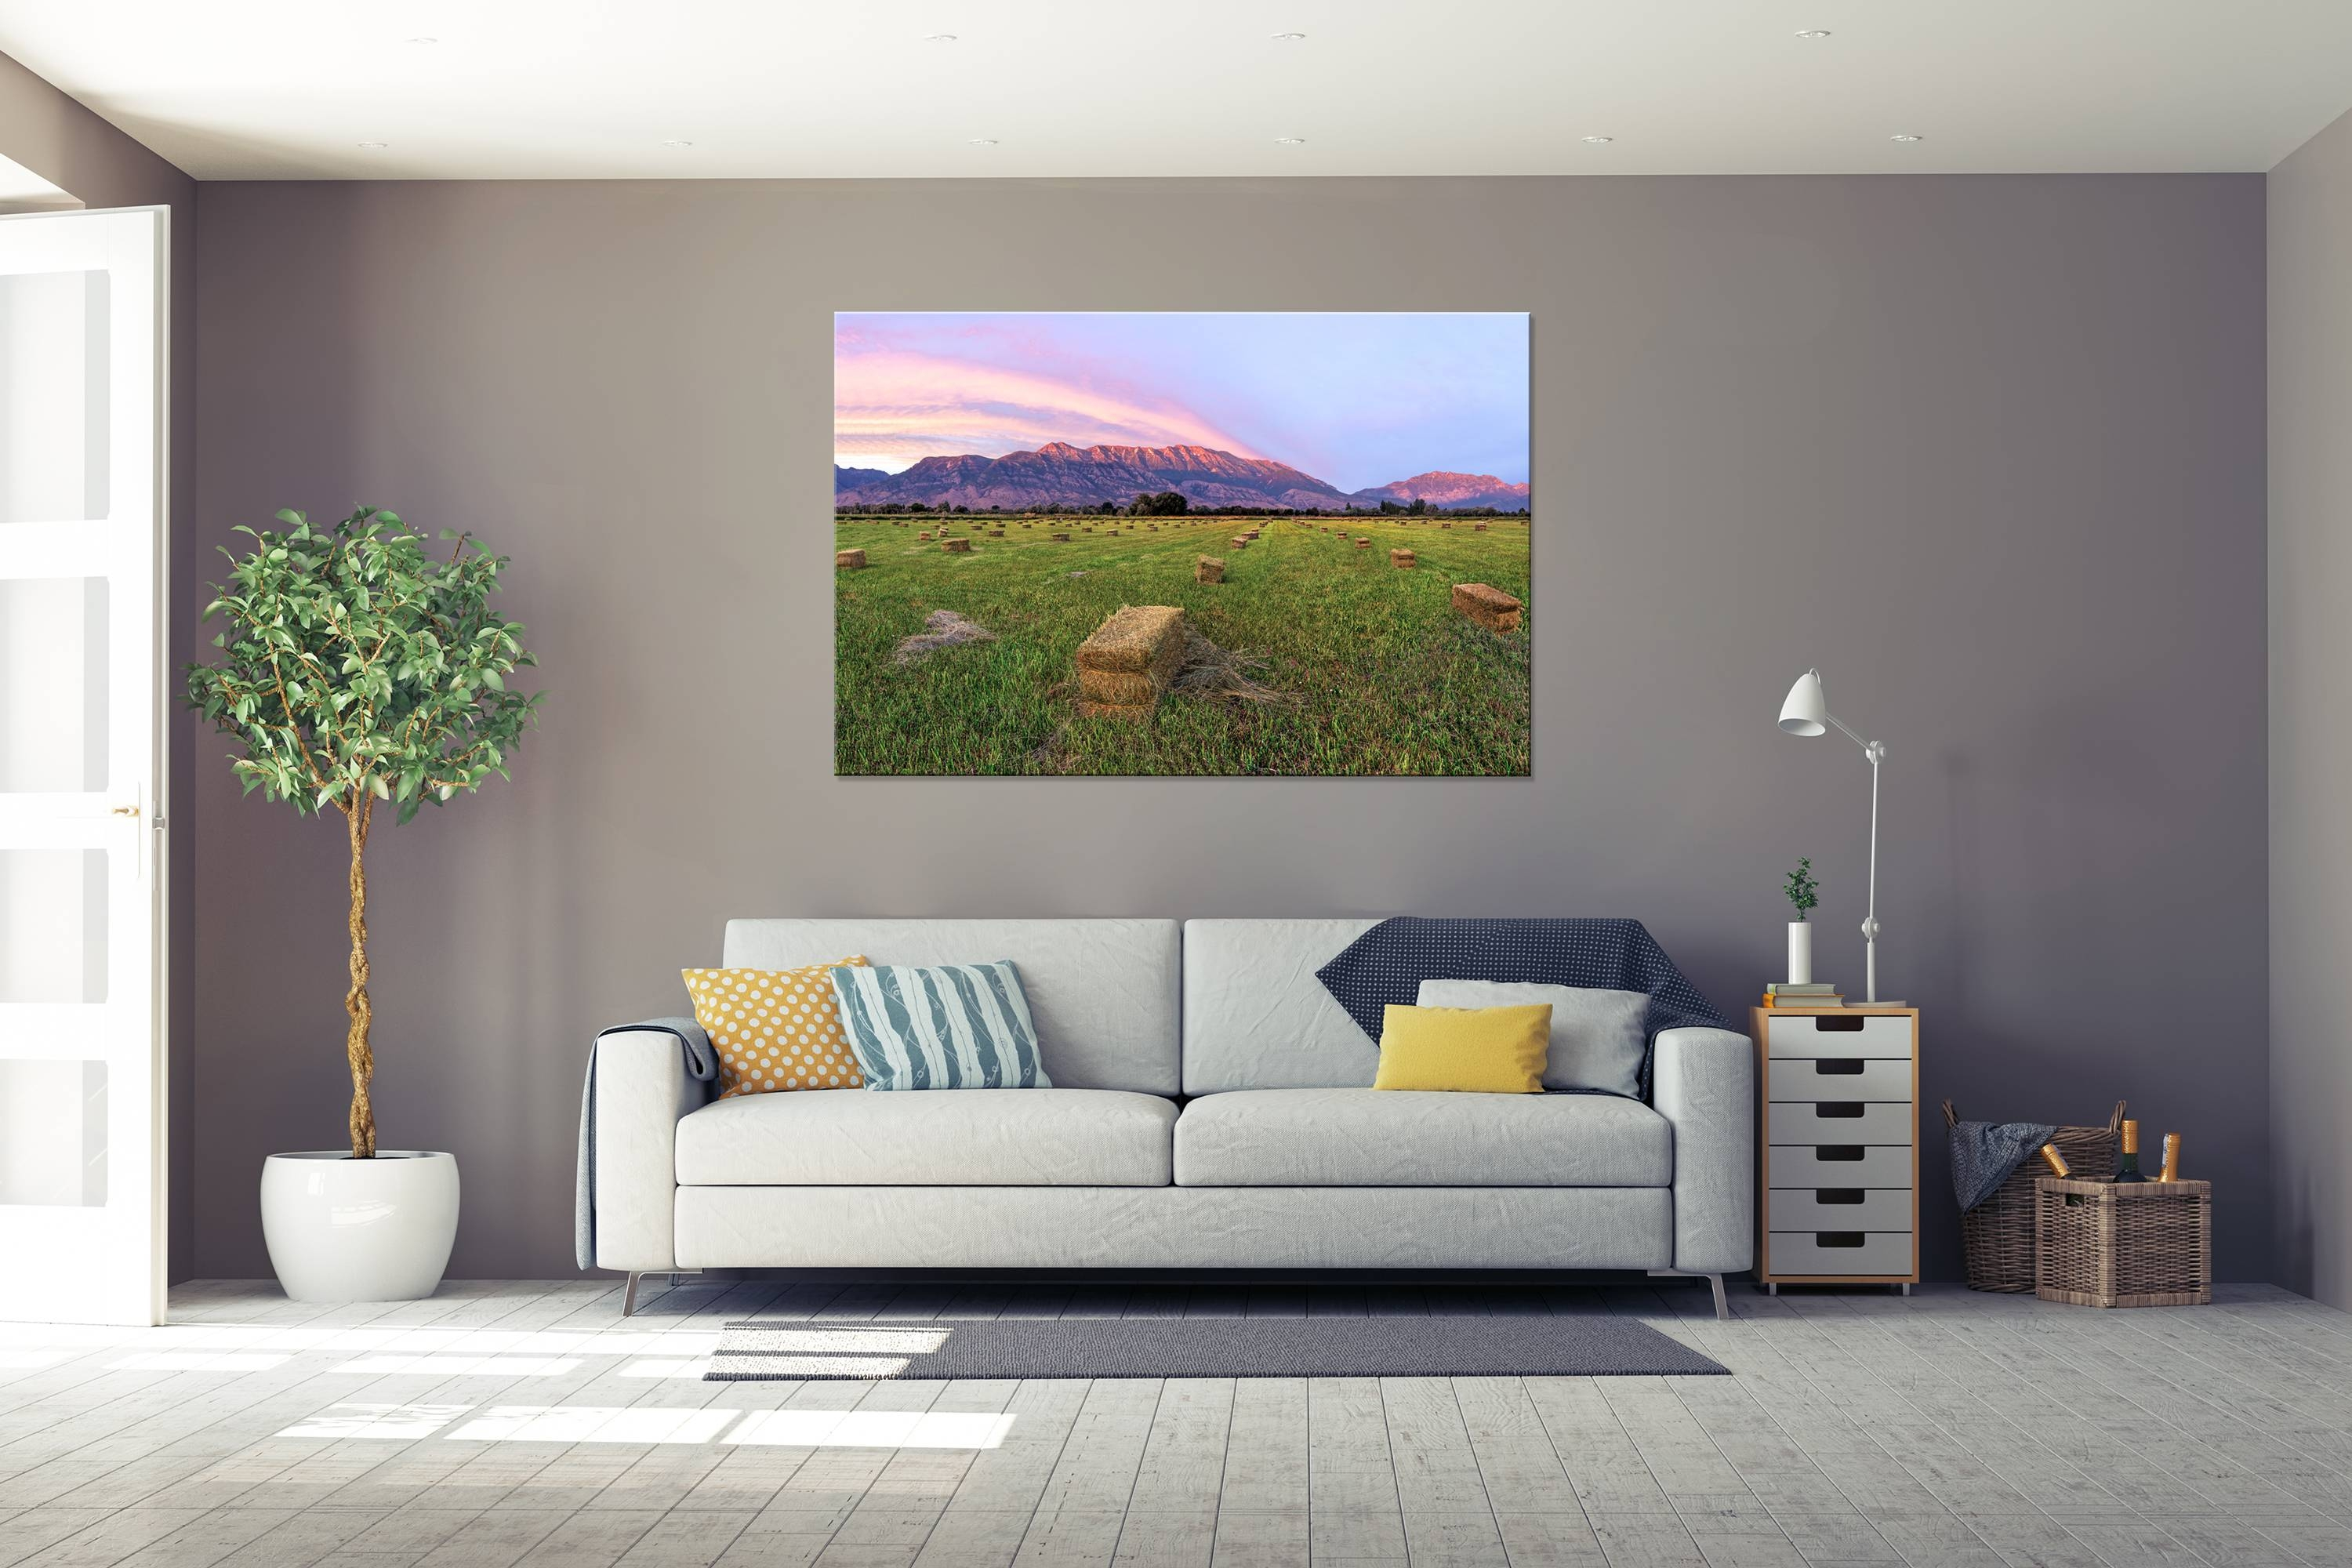 Timpanogos Farm – Rogue Aurora Photography Intended For Best And Newest Photography Wall Art (View 17 of 25)